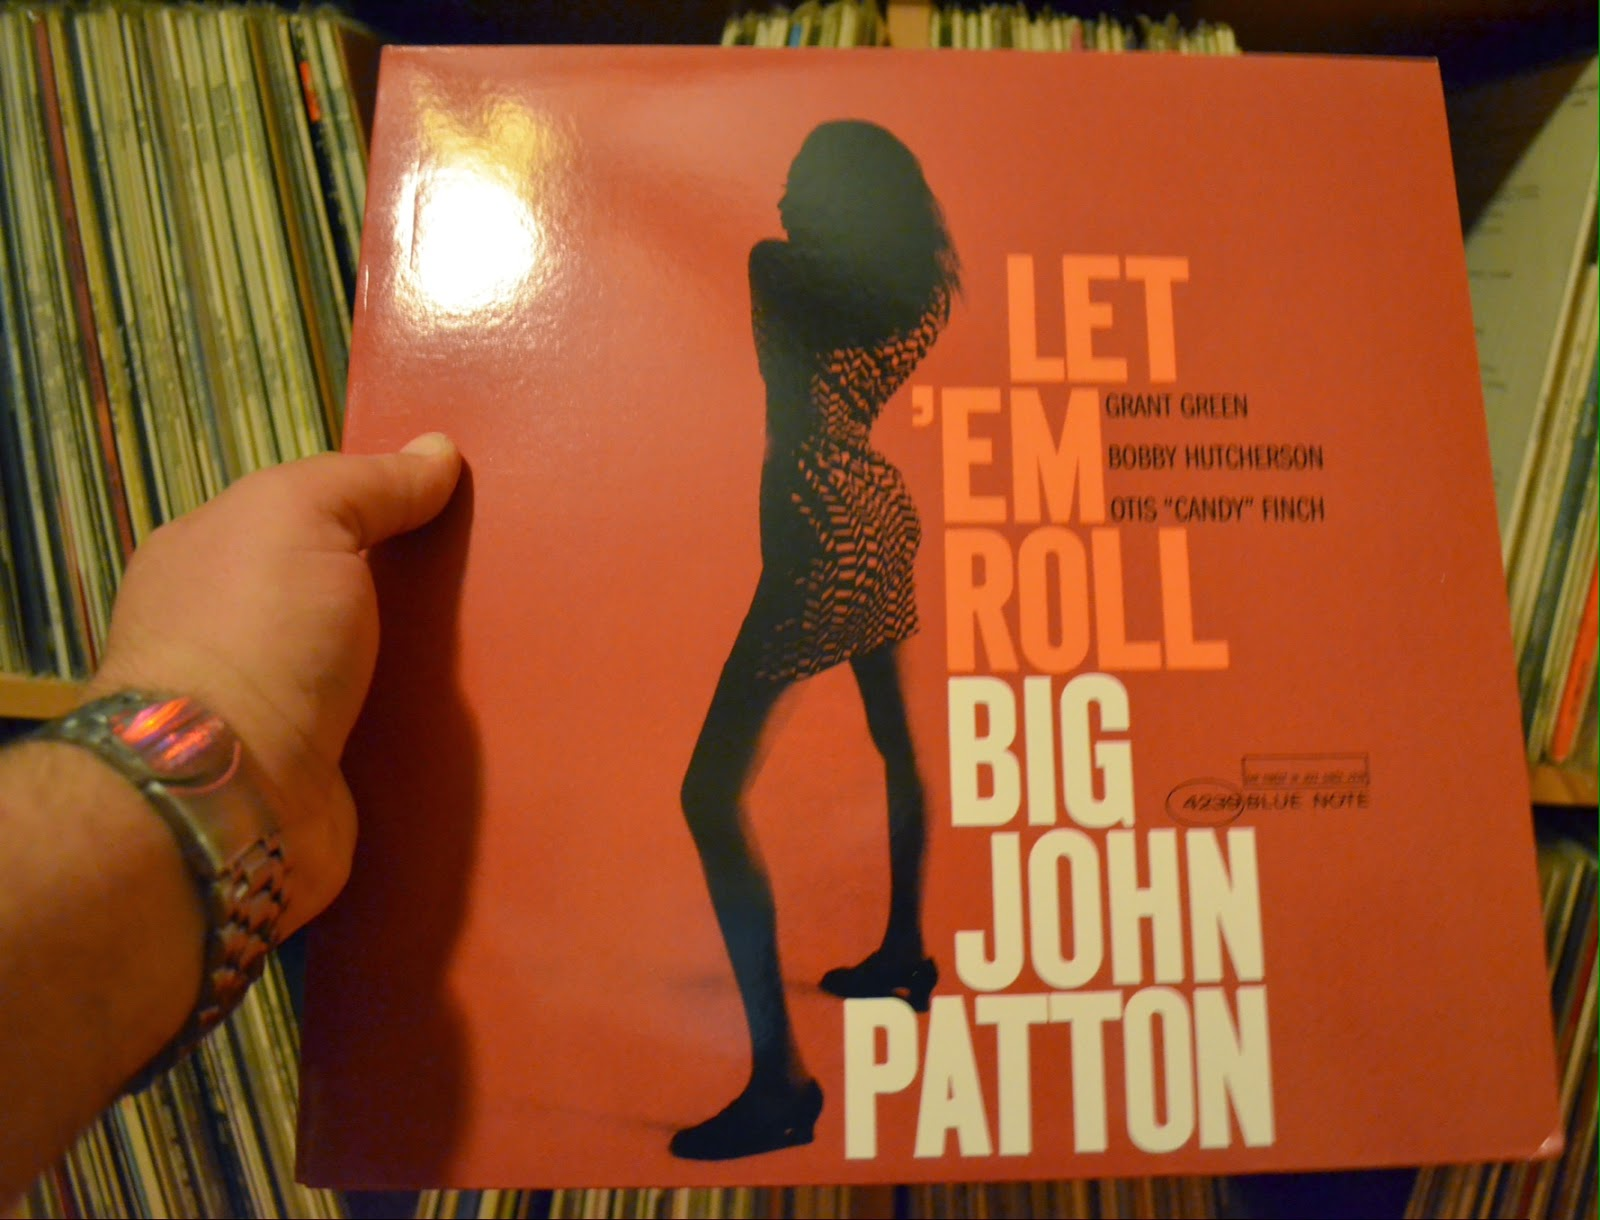 Spychedelic Sally: Big John Patton ...